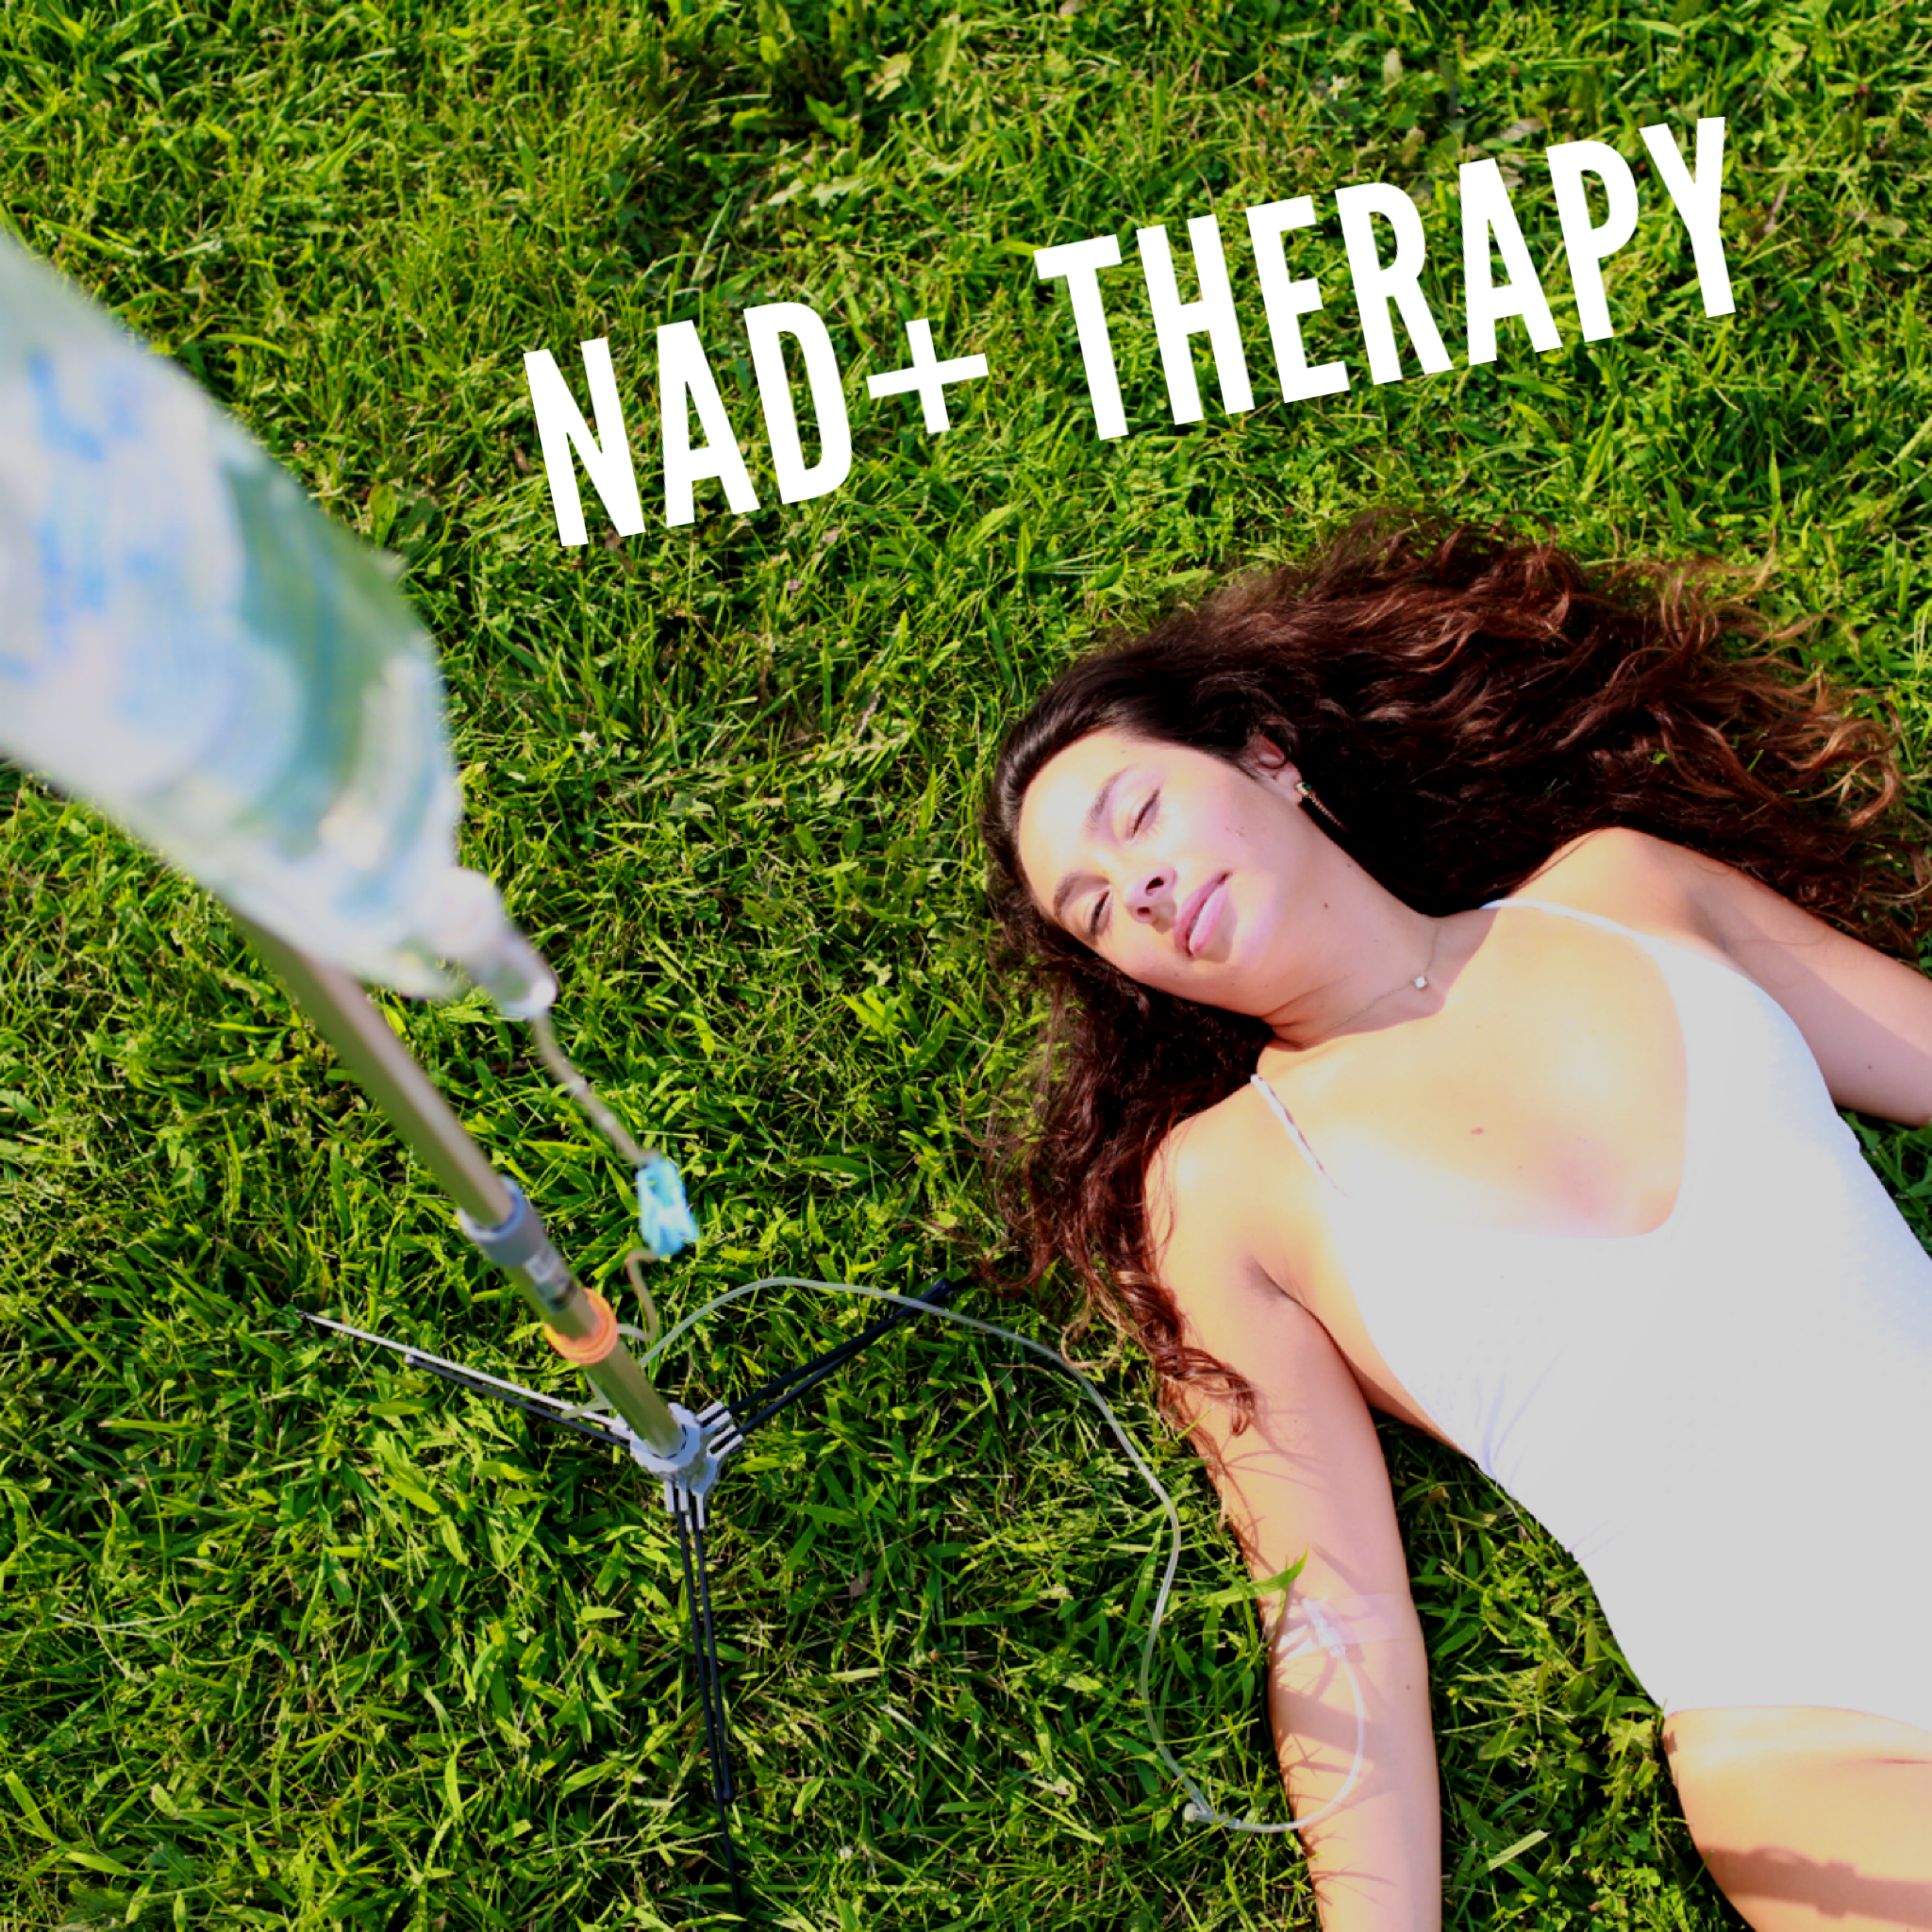 NAD+ THERAPY. - Learn about the major benefits of NAD+ Therapy:■ Boosts your metabolism and energy levels ■ Slows the aging process■ Assists with alcohol and drug addiction recovery■ Reduces the symptoms of major neurodegenerative disordersRead more about our available treatments and special packages!